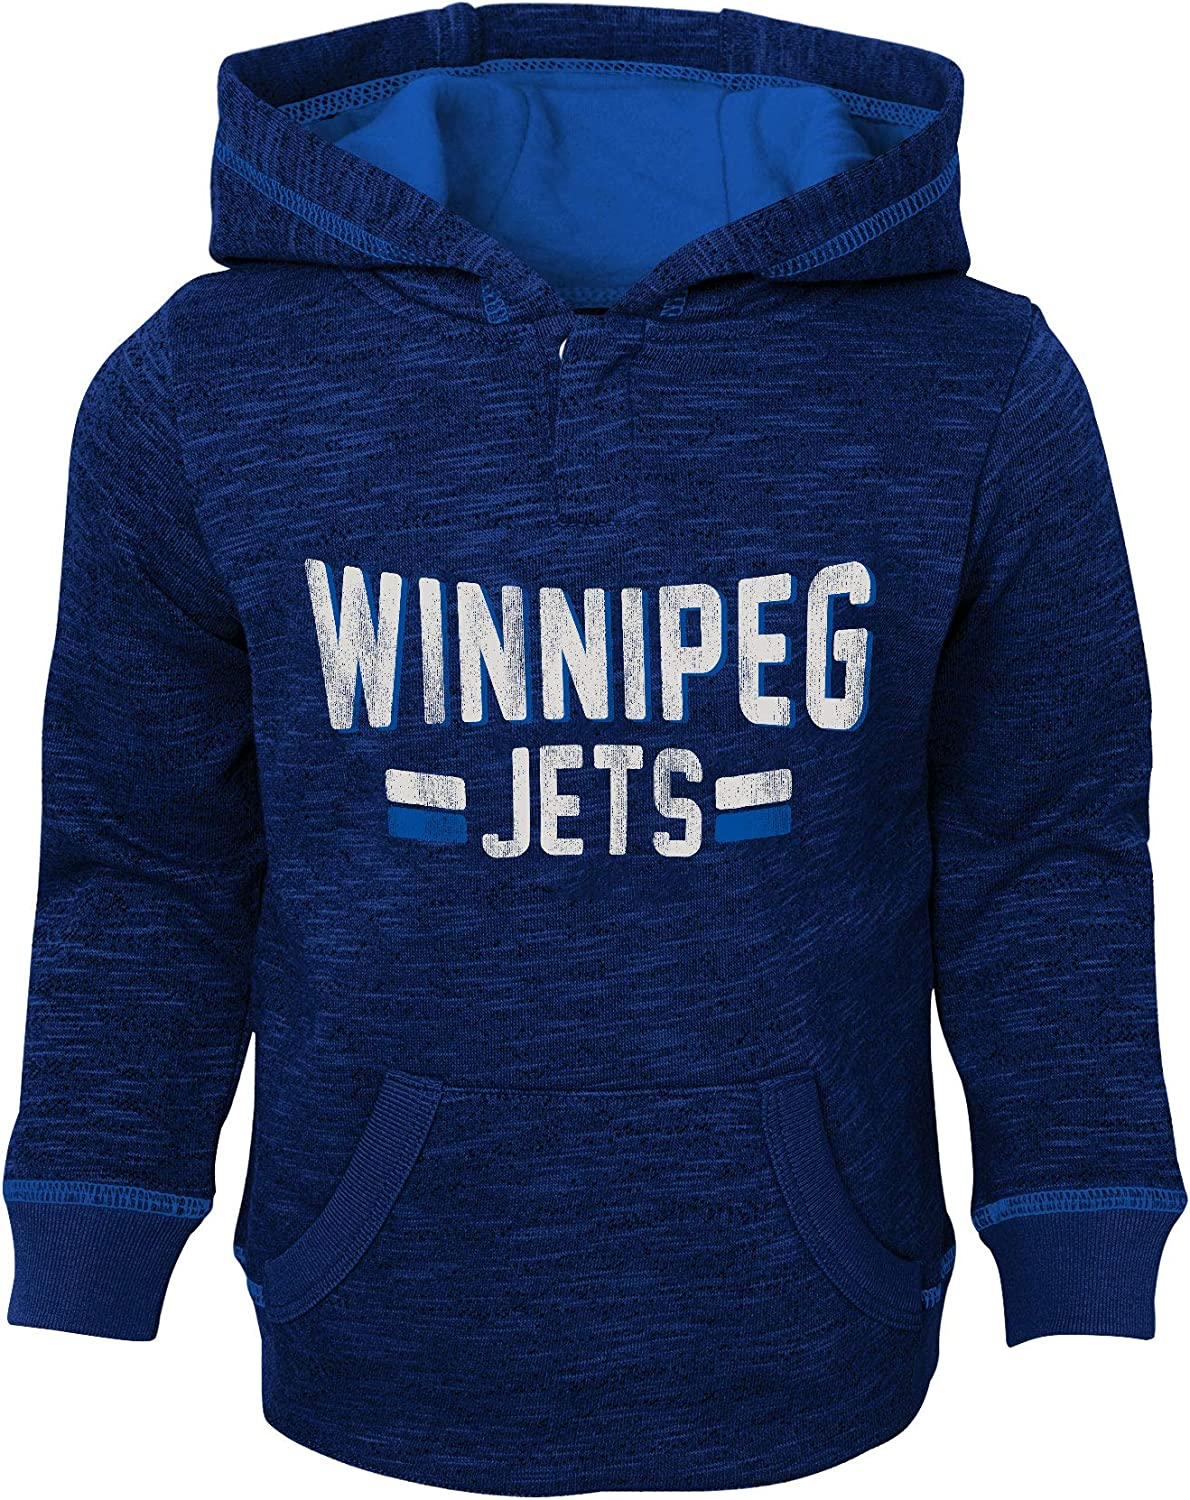 Winnipeg Jets Infant Tiny Enforcer Pullover Fleece Hoodie